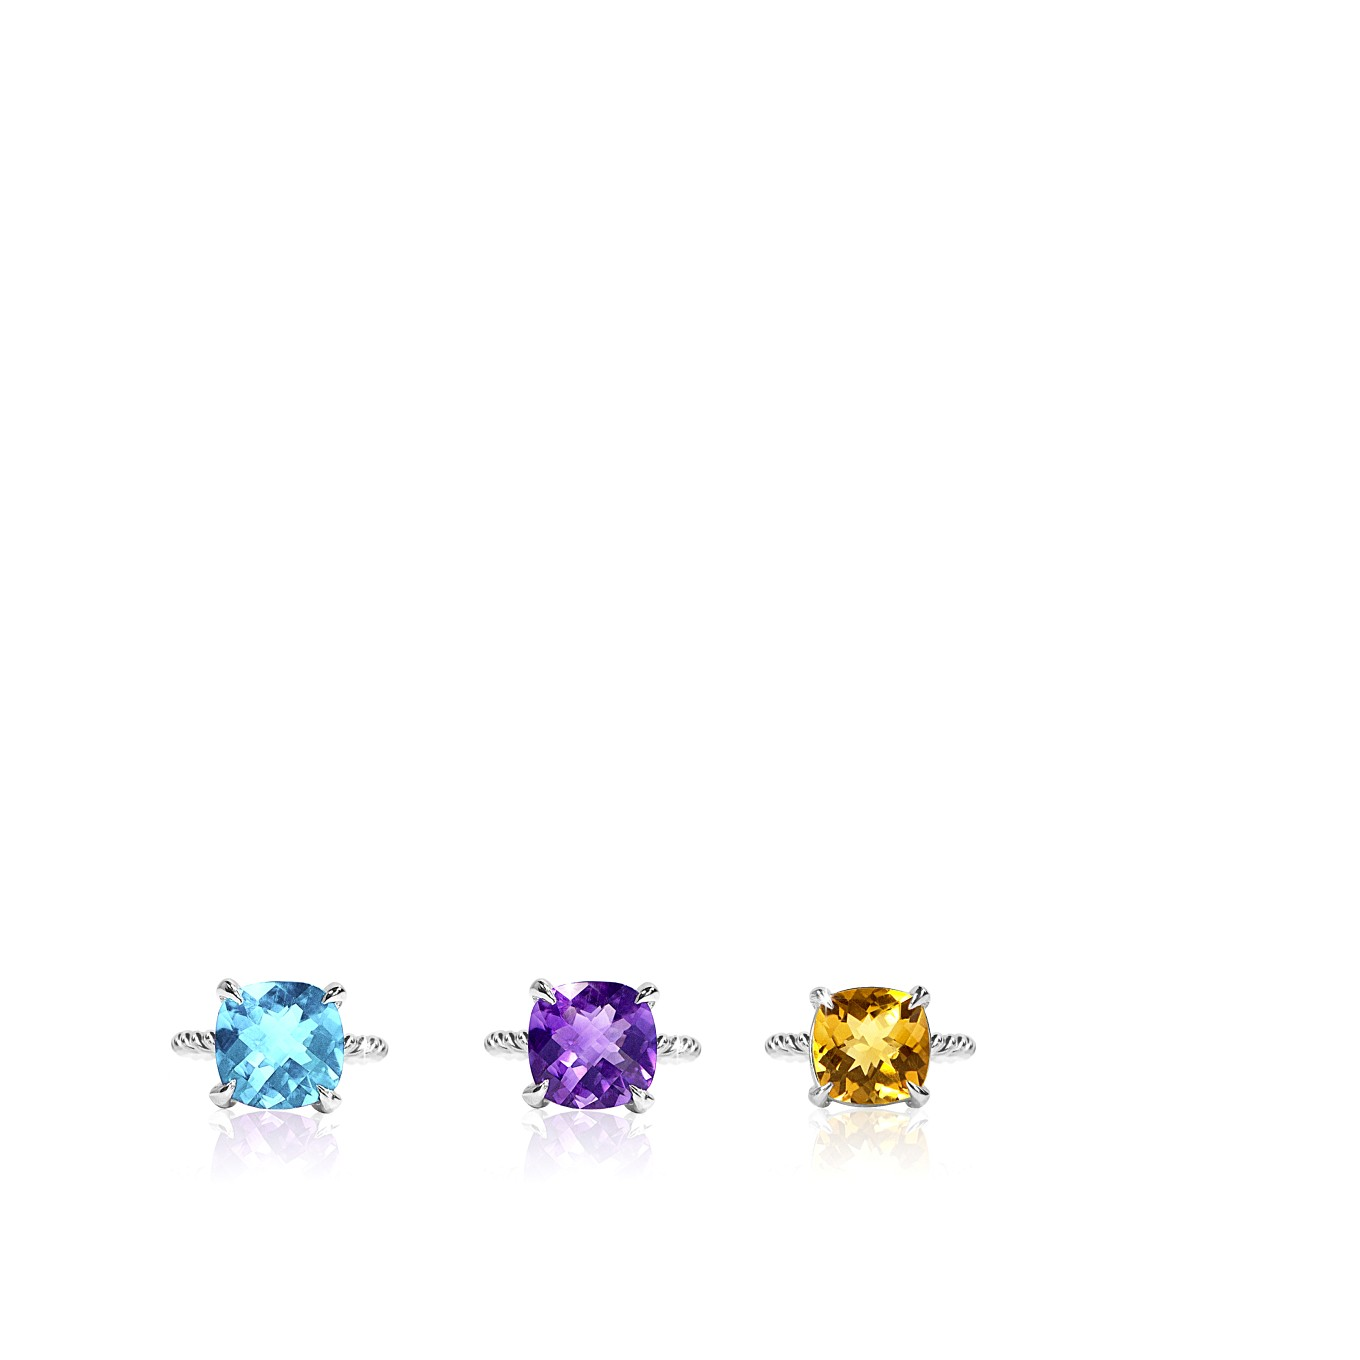 TOPAZ, CITRINE, & AMETHYST CUSHION CUT BRAID RINGS IN STERLING SILVER